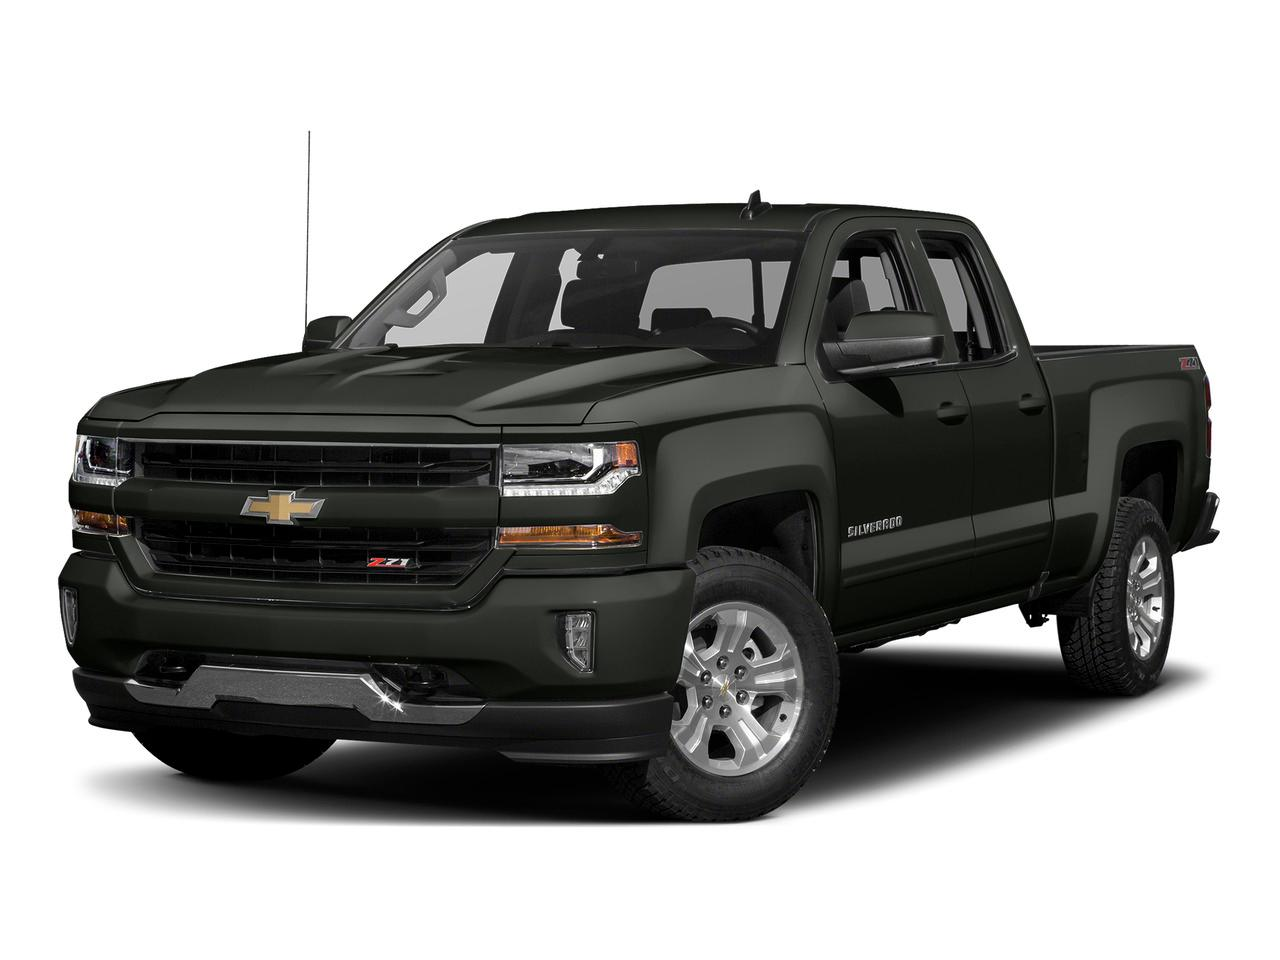 2017 Chevrolet Silverado 1500 Vehicle Photo in Warren, OH 44483